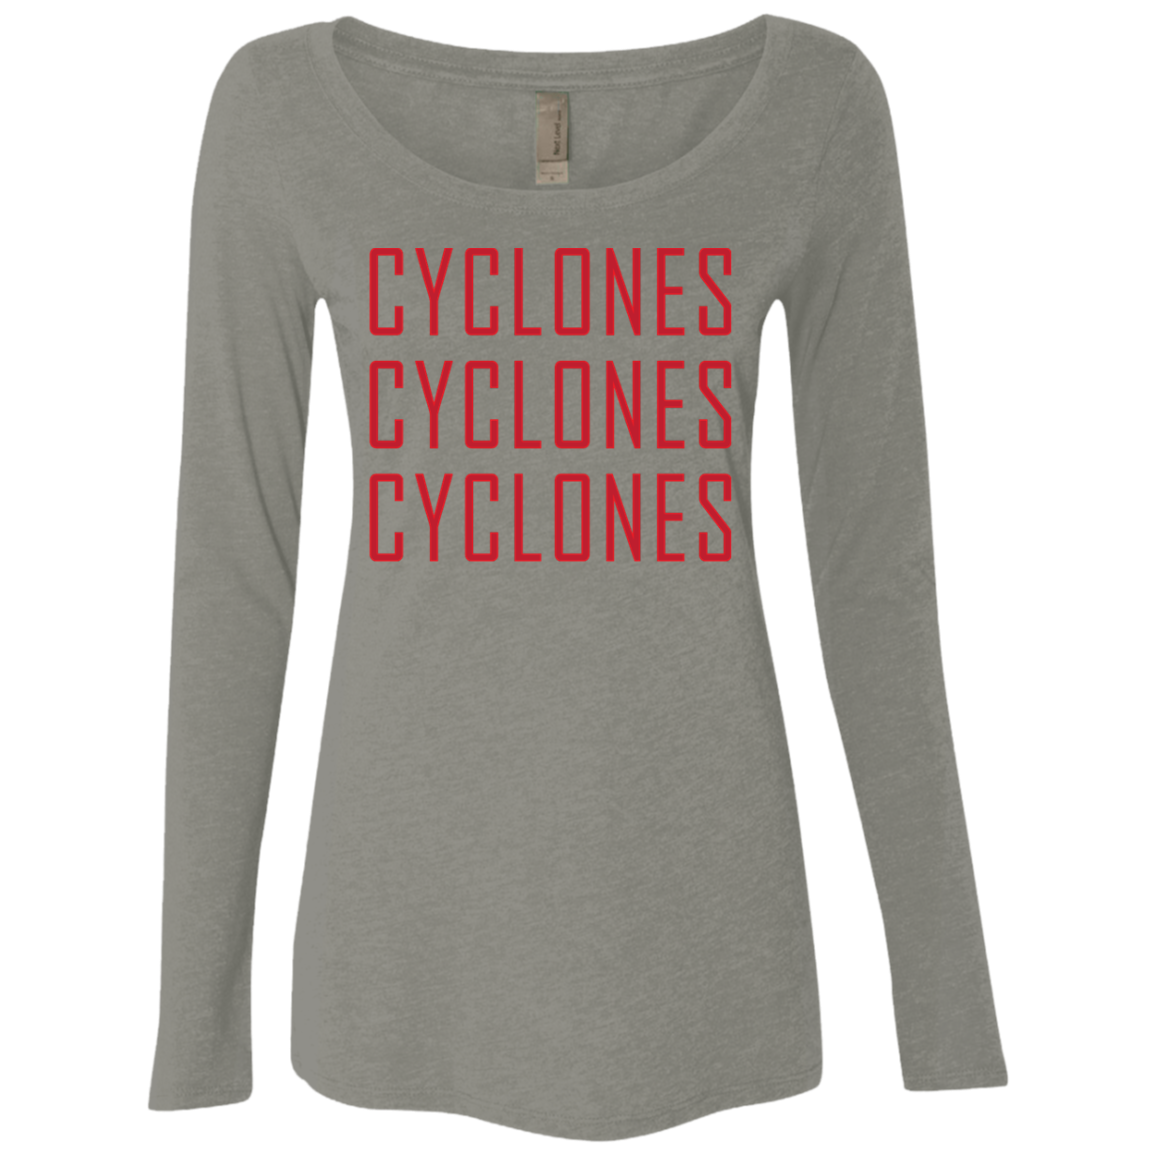 Cyclones Cyclones Cyclones Women's Long Sleeve Tee